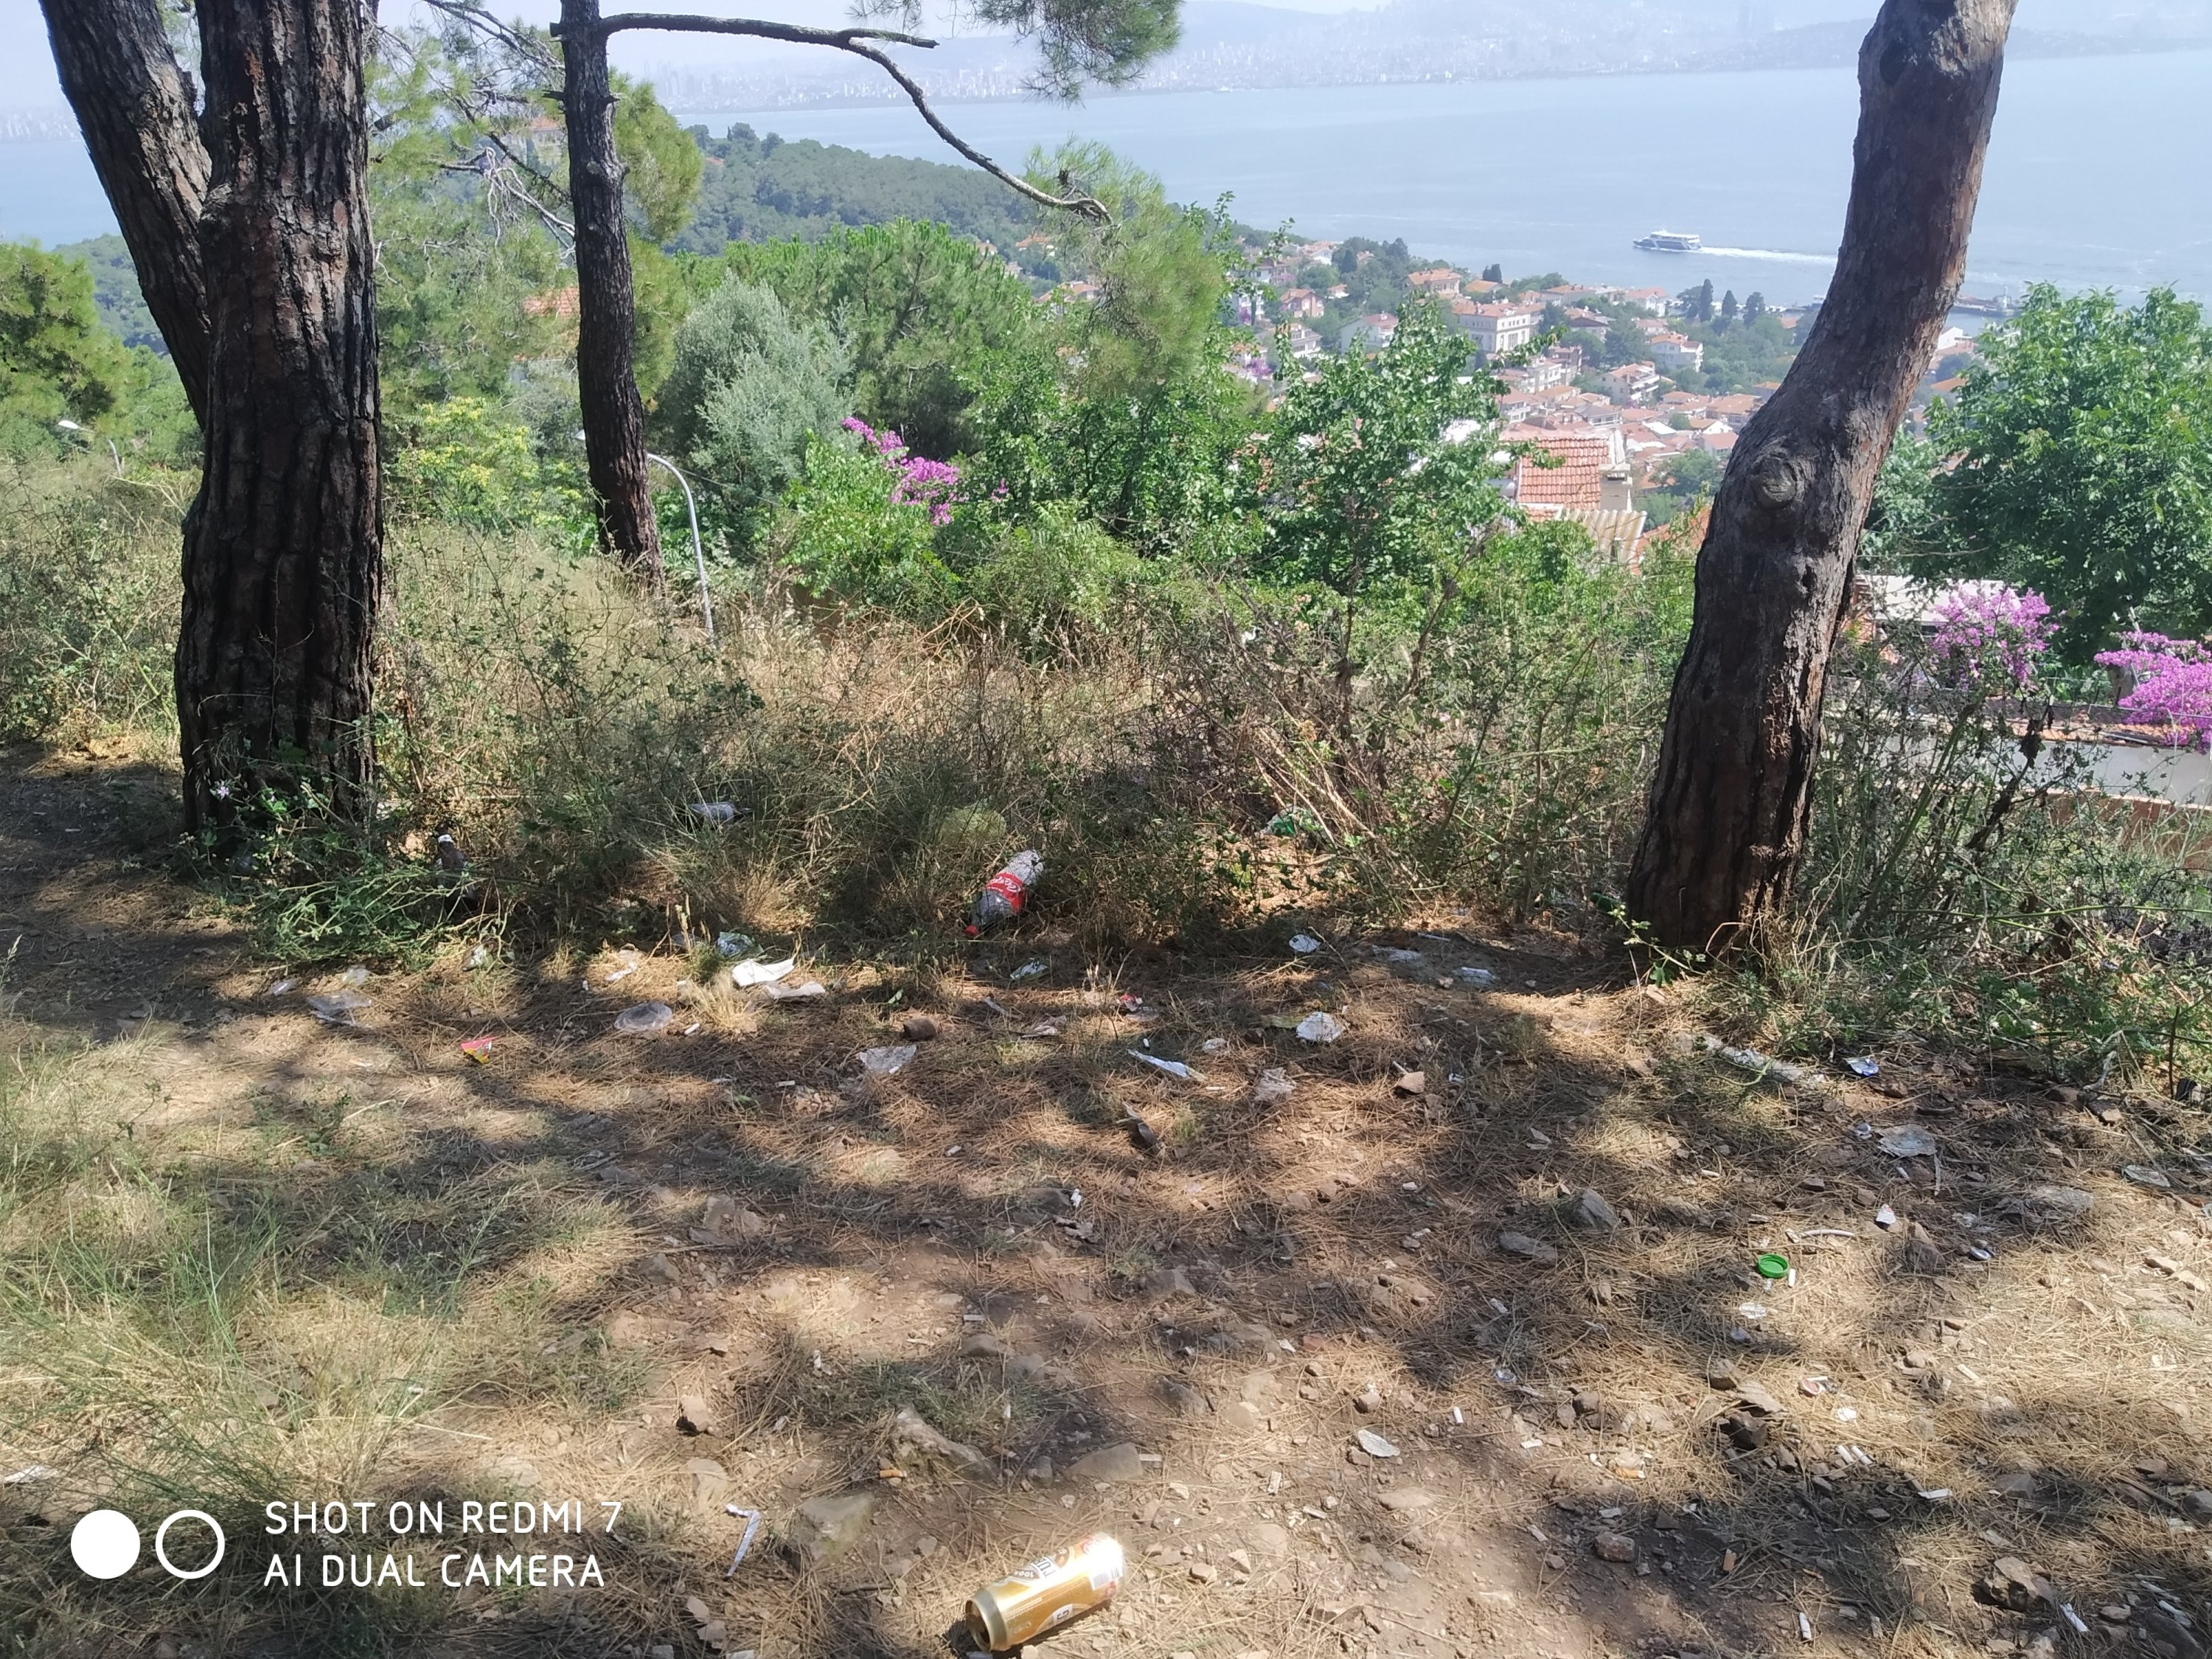 A forest area polluted with glass and plastic bags in Büyükada, Princes' Islands, Istanbul, Turkey. (Photo by Muhammet Ali Güler)